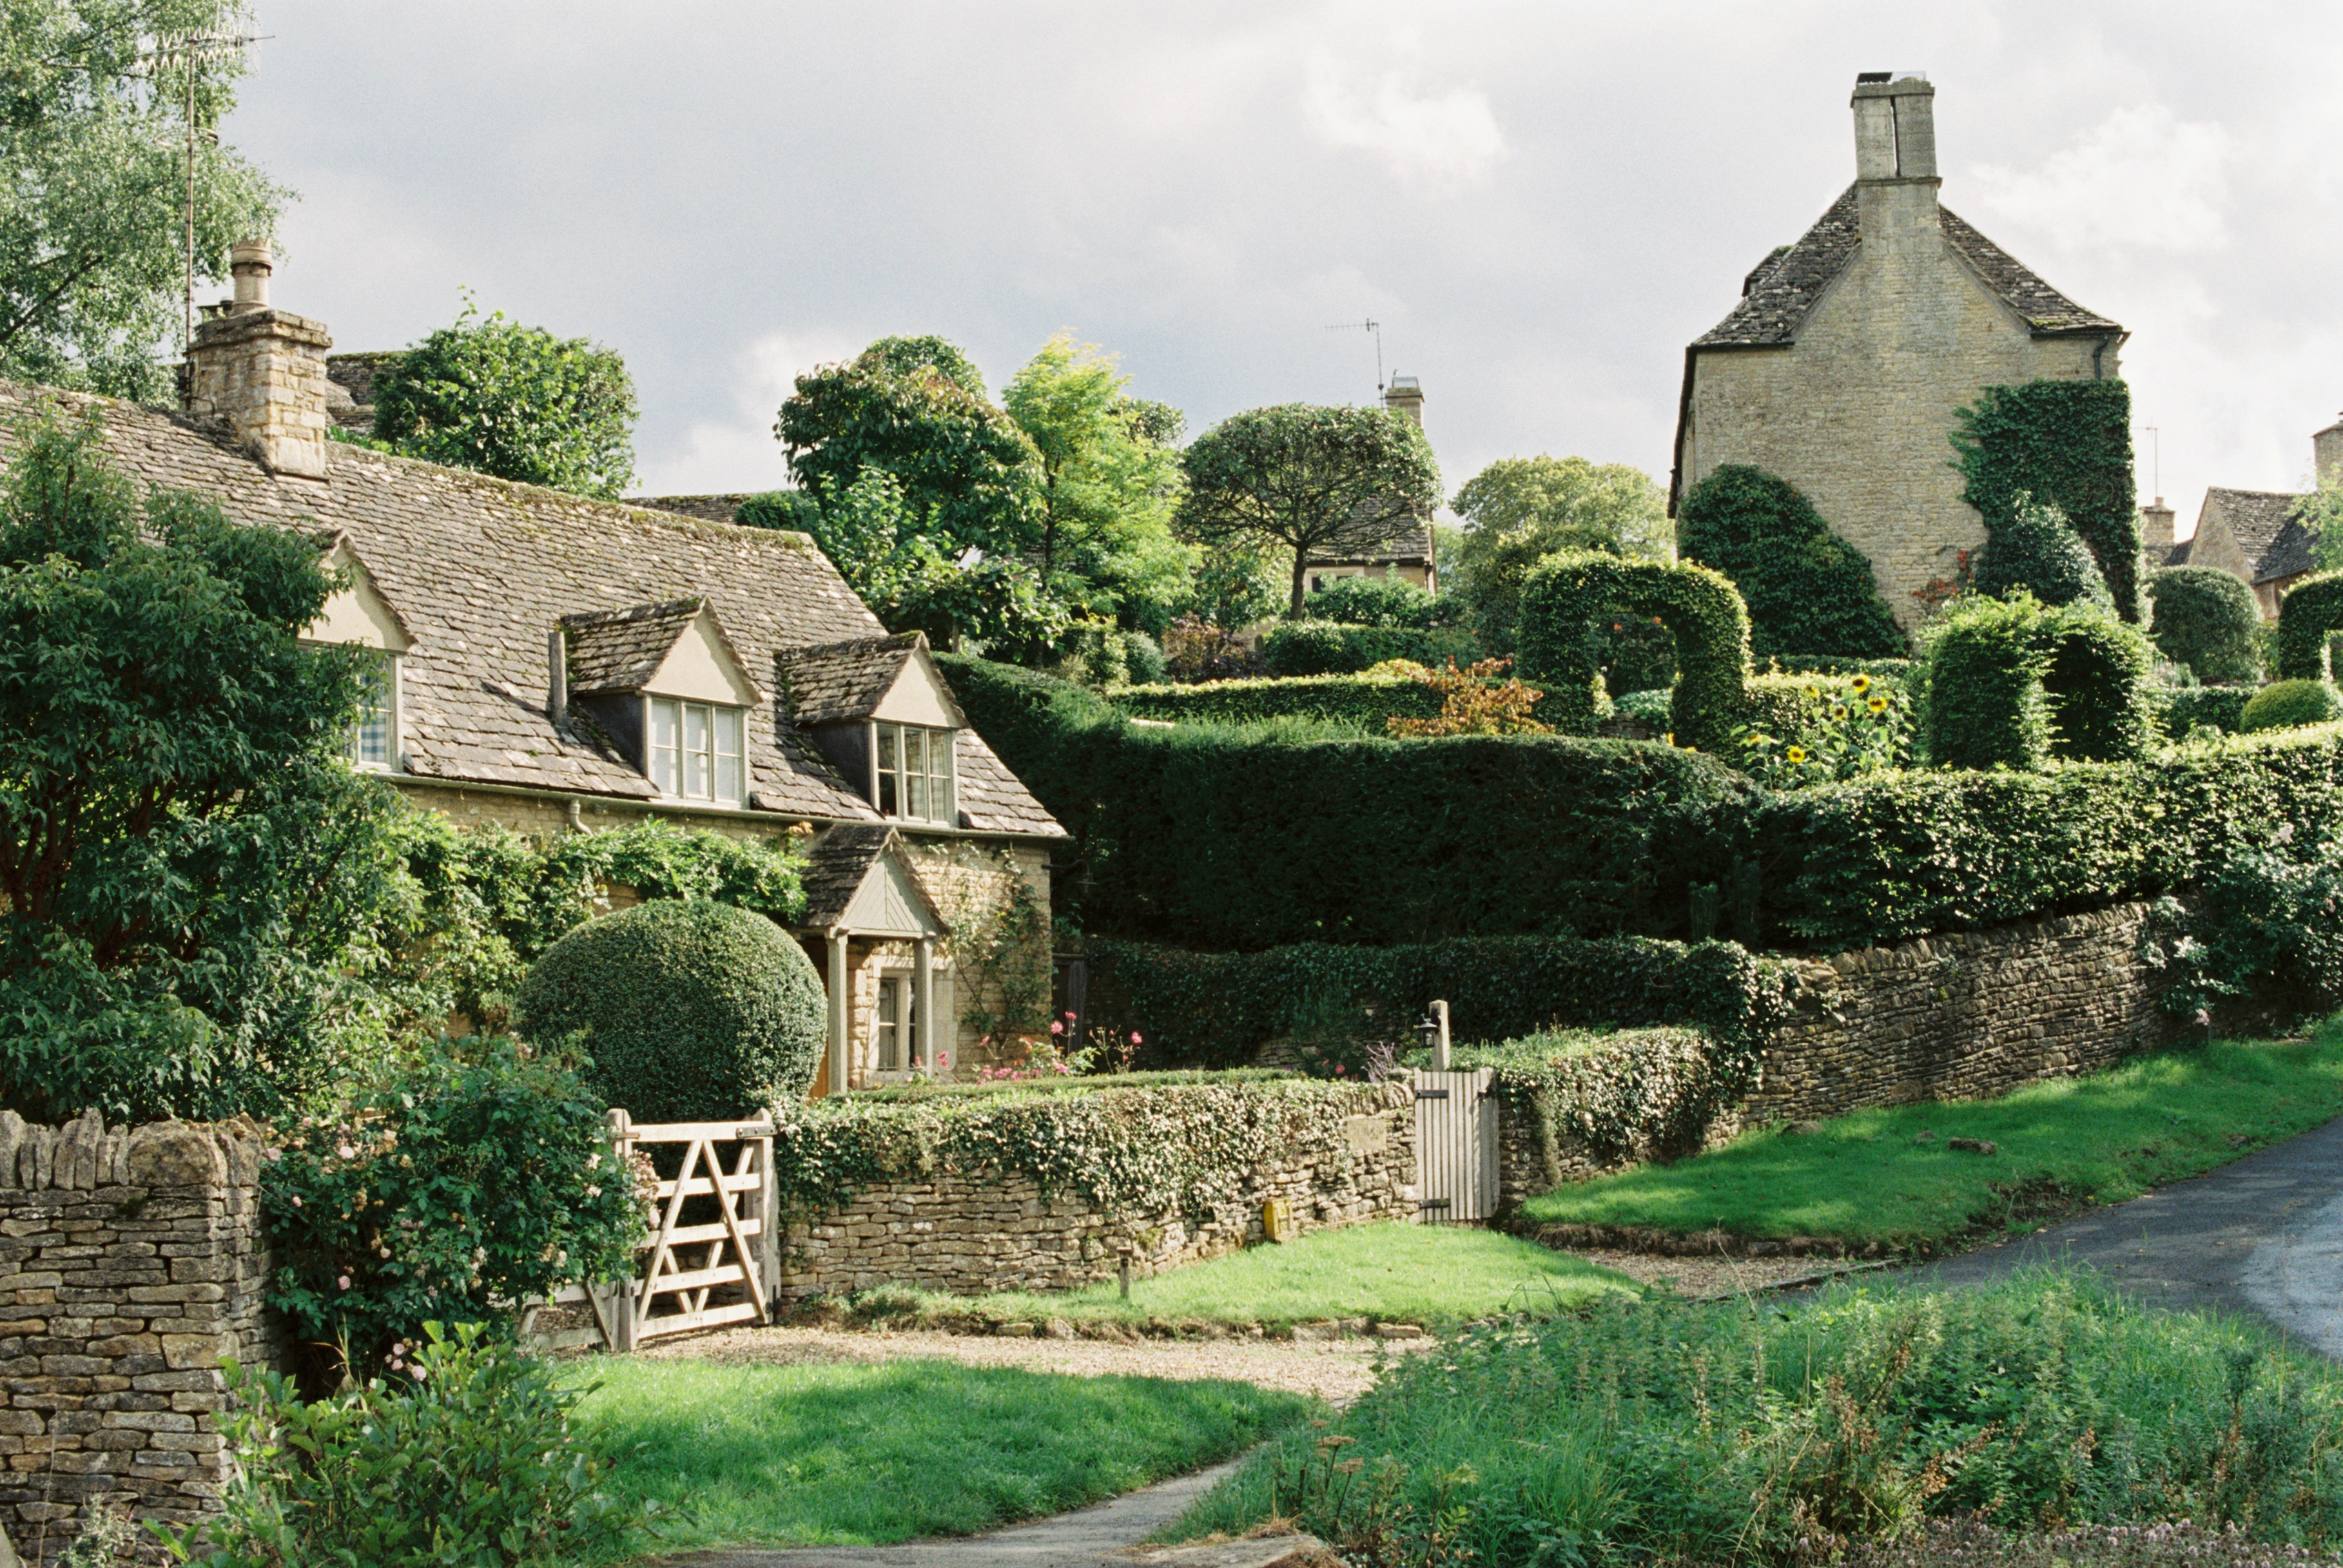 Cotswold-village-upper-slaughter